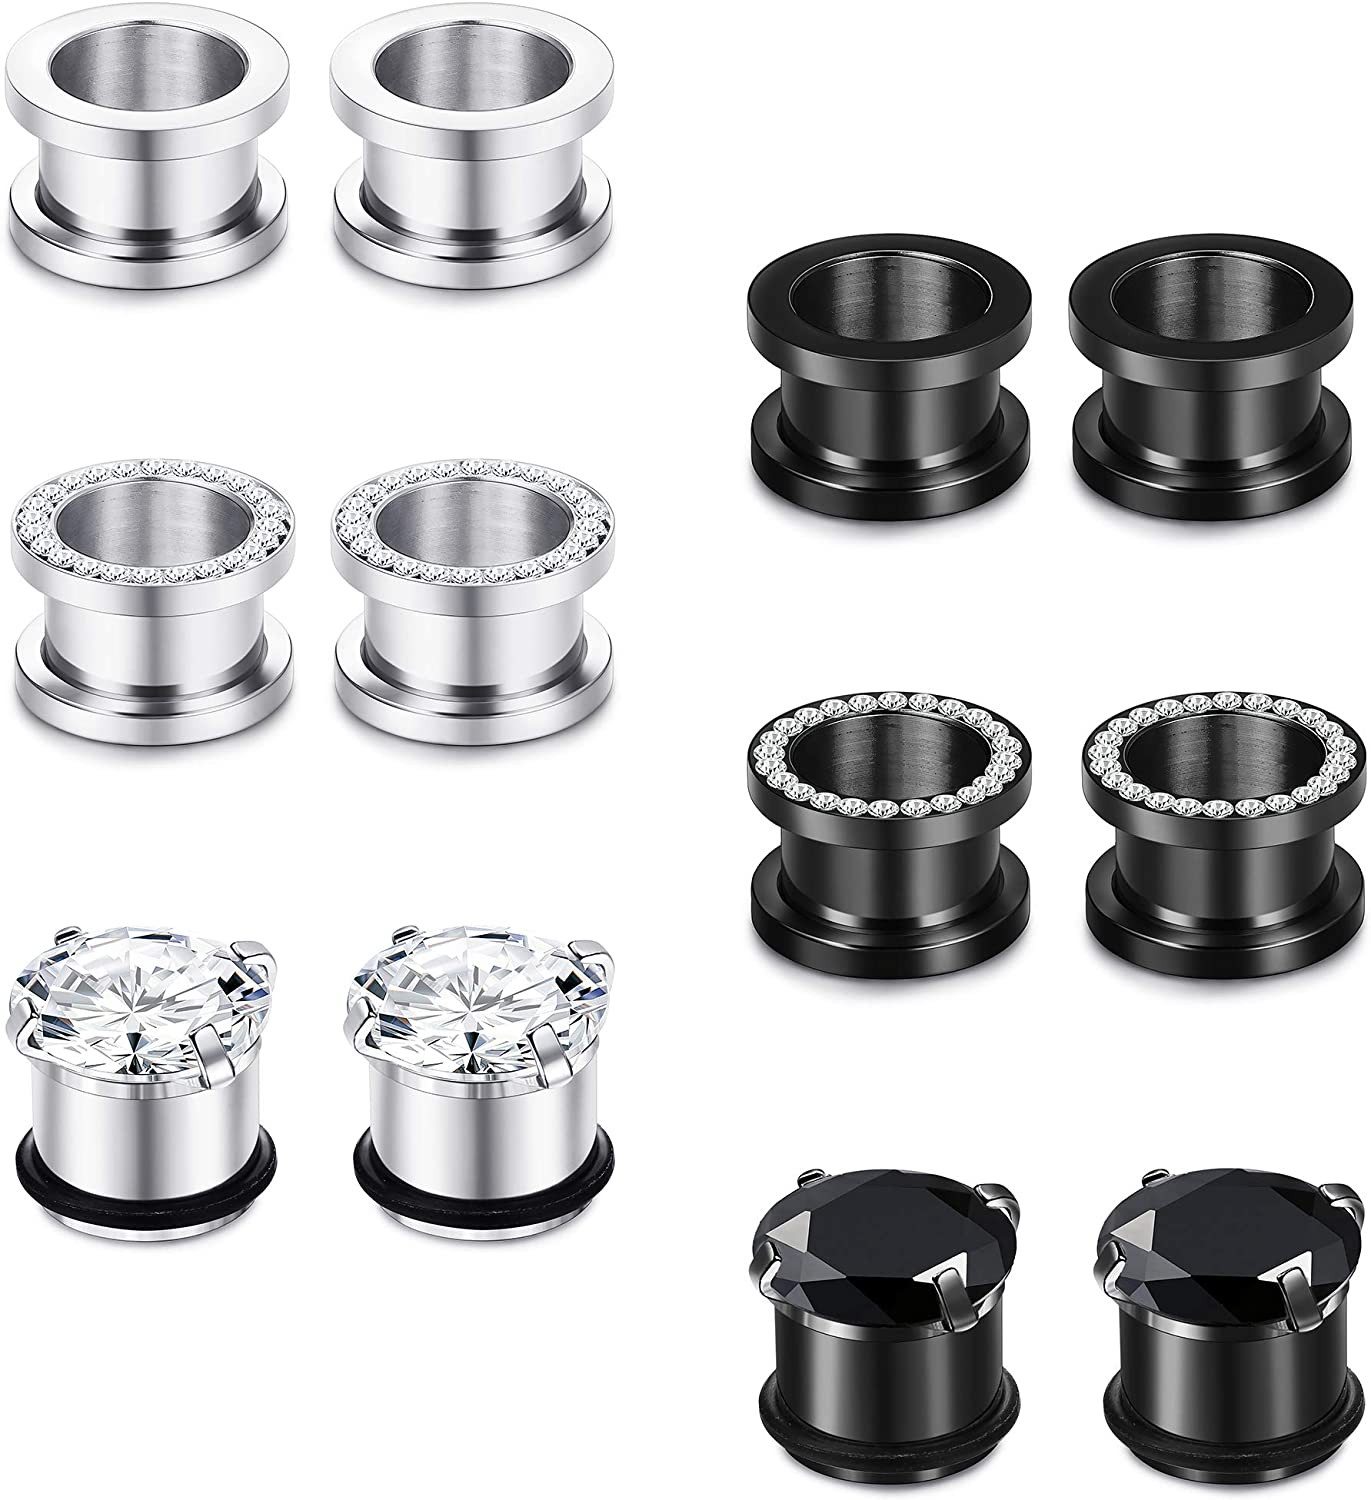 JOERICA 6 Pairs Stainless Steel Ear Gauges CZ Screw Plugs Tunnel Ear Expander Stretcher Piercing